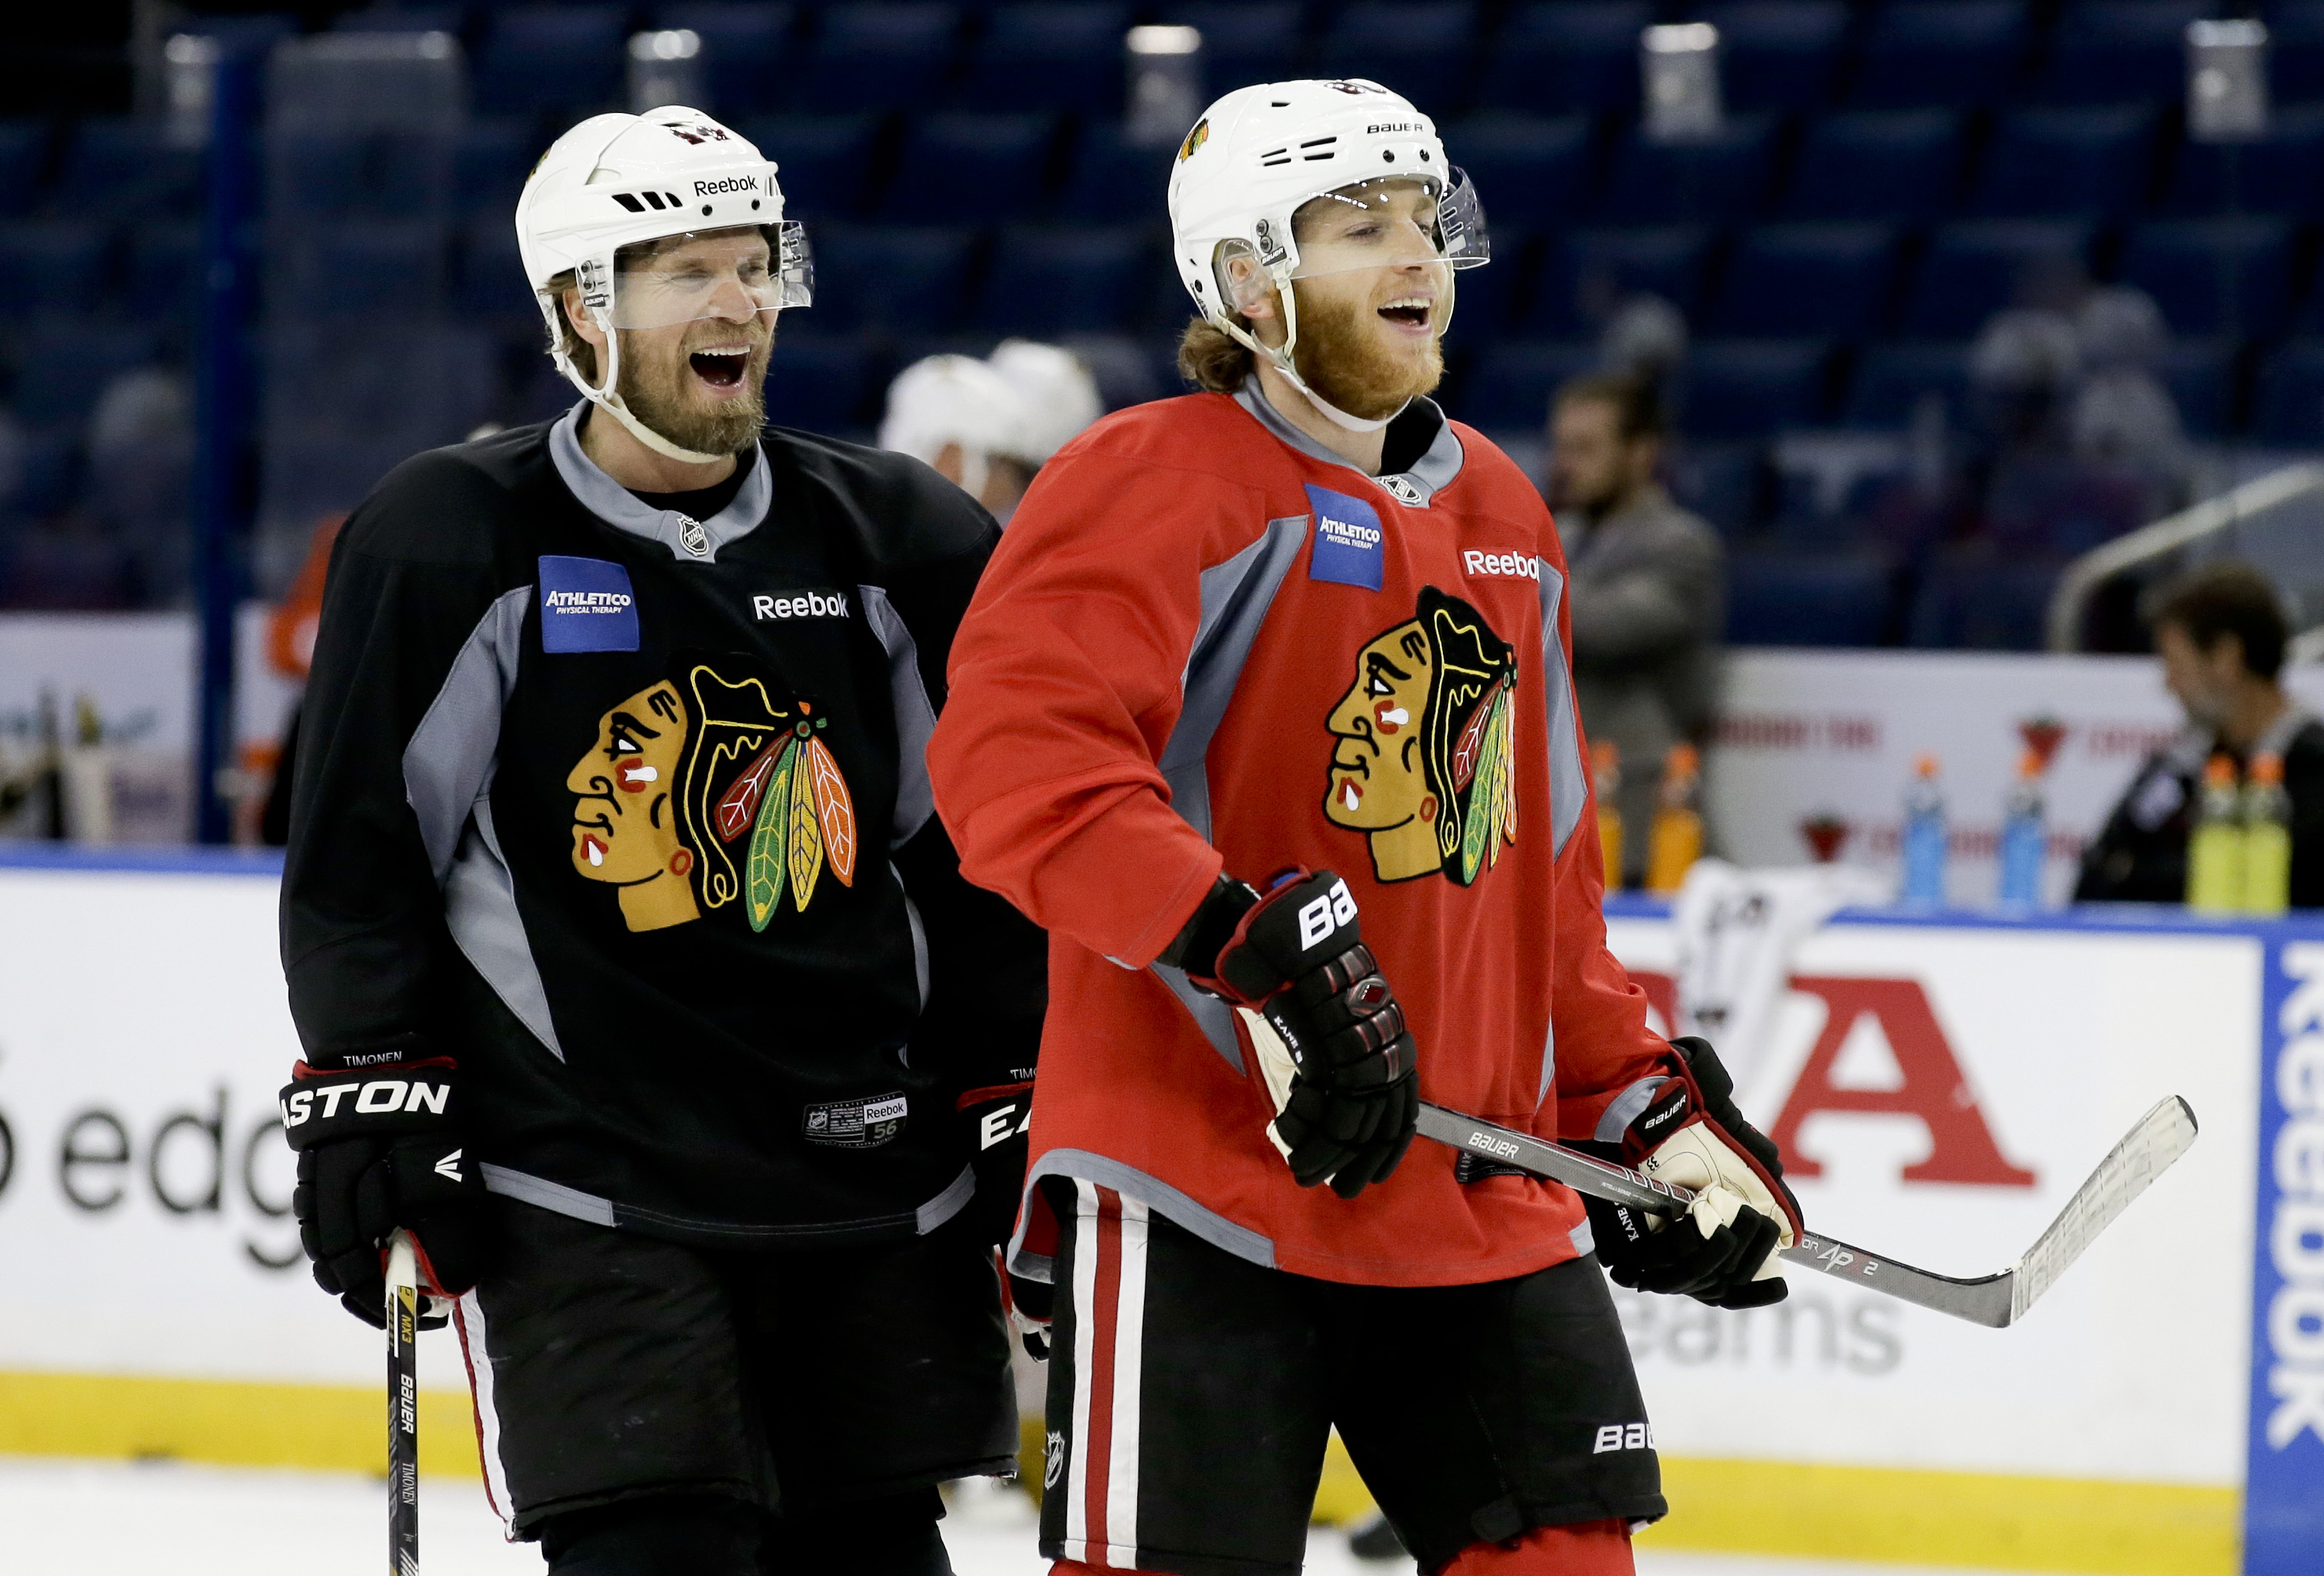 Chicago Blackhawks defenseman Kimmo Timonen, left, right wing Patrick Kane laugh during practice at the NHL hockey Stanley Cup Final, Friday, June 5, 2015, in Tampa, Fla. The Chicago Blackhawks lead the best-of-seven games series against the Tampa Bay Lig